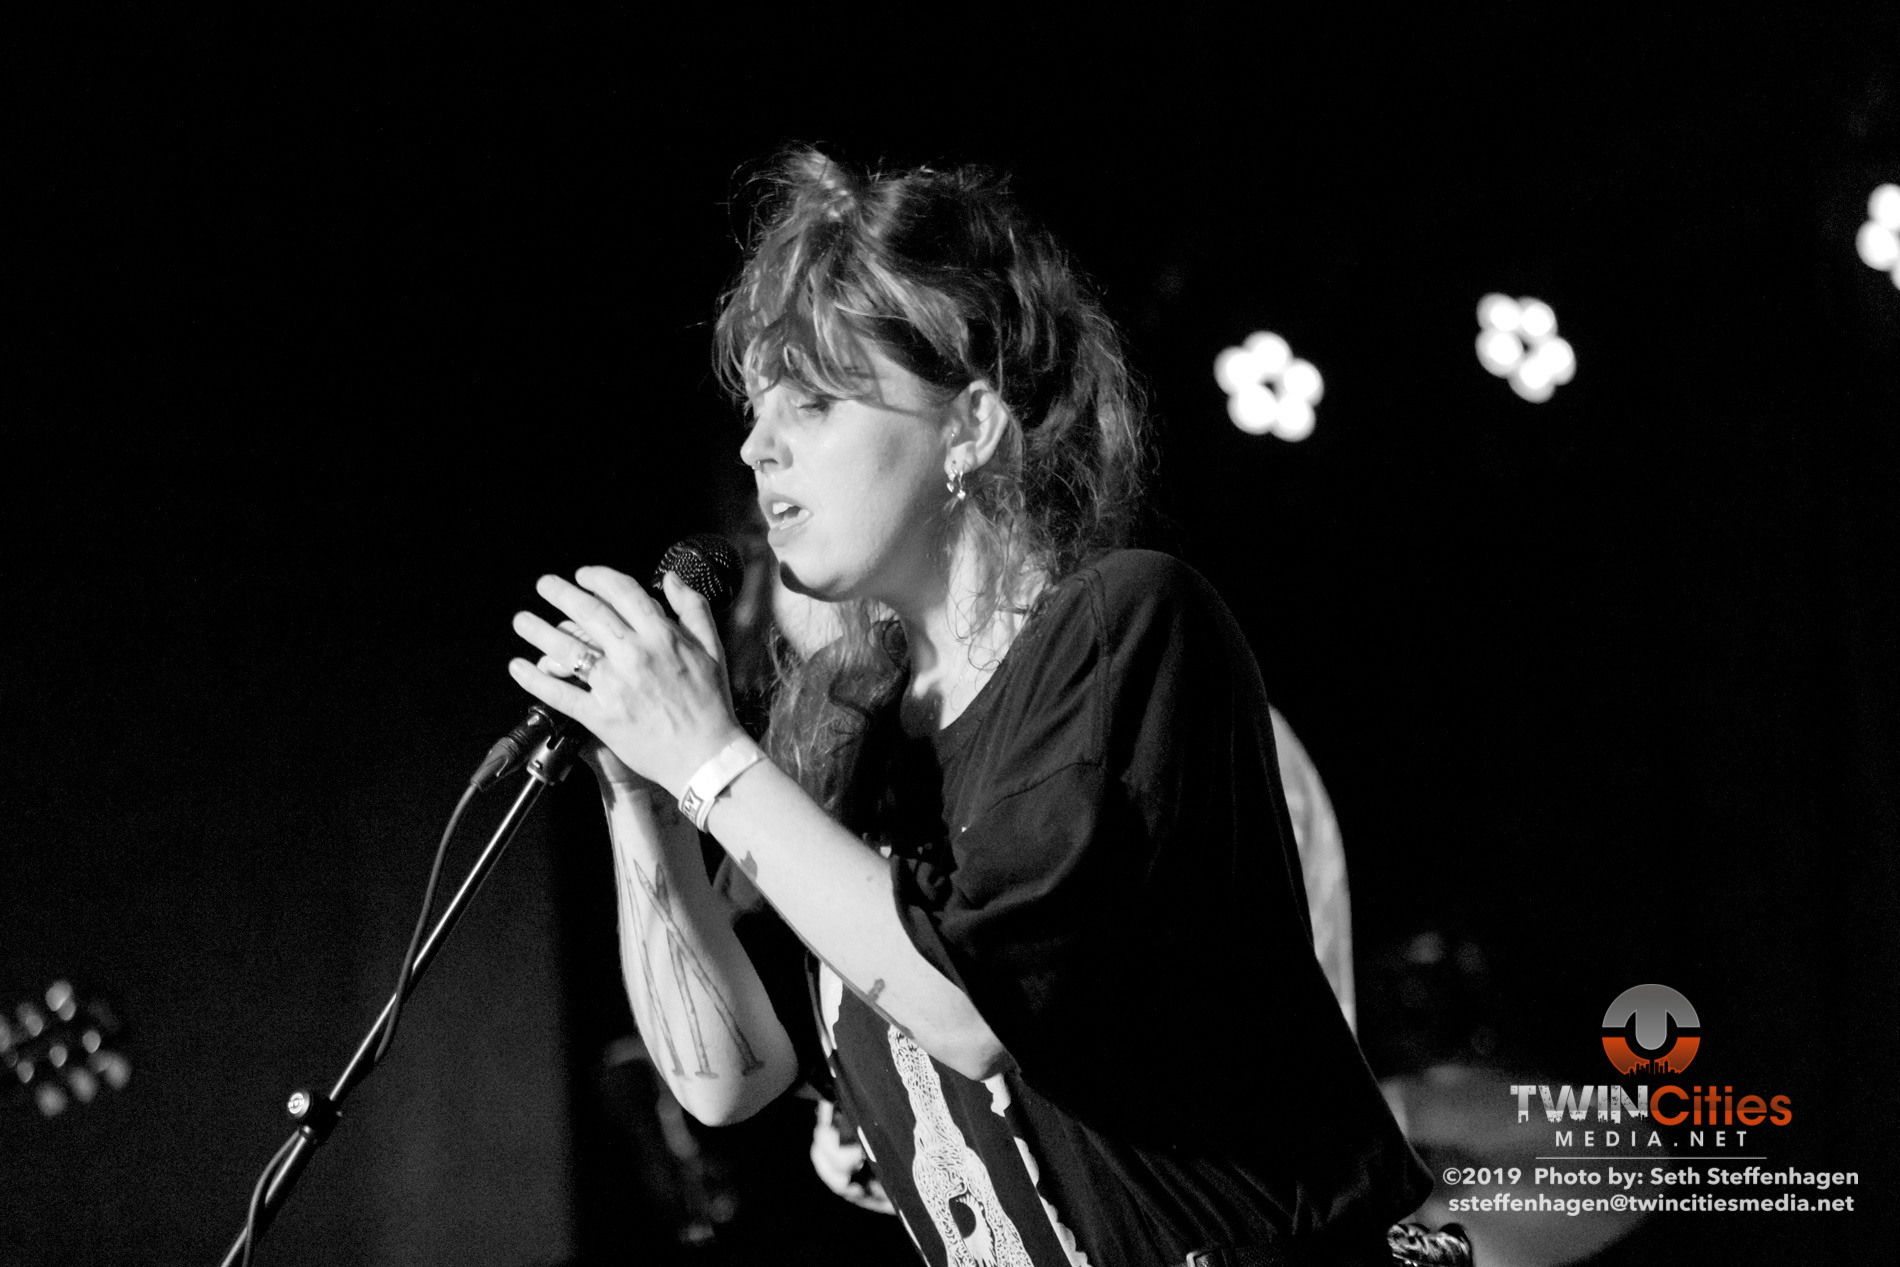 March 27, 2019 - Saint Paul, Minnesota, United States - Thou and Emma Ruth Rundle live in concert at the Turf Club along with False, Gorgus and Without as the openers.  (Photo by Seth Steffenhagen/Steffenhagen Photography)